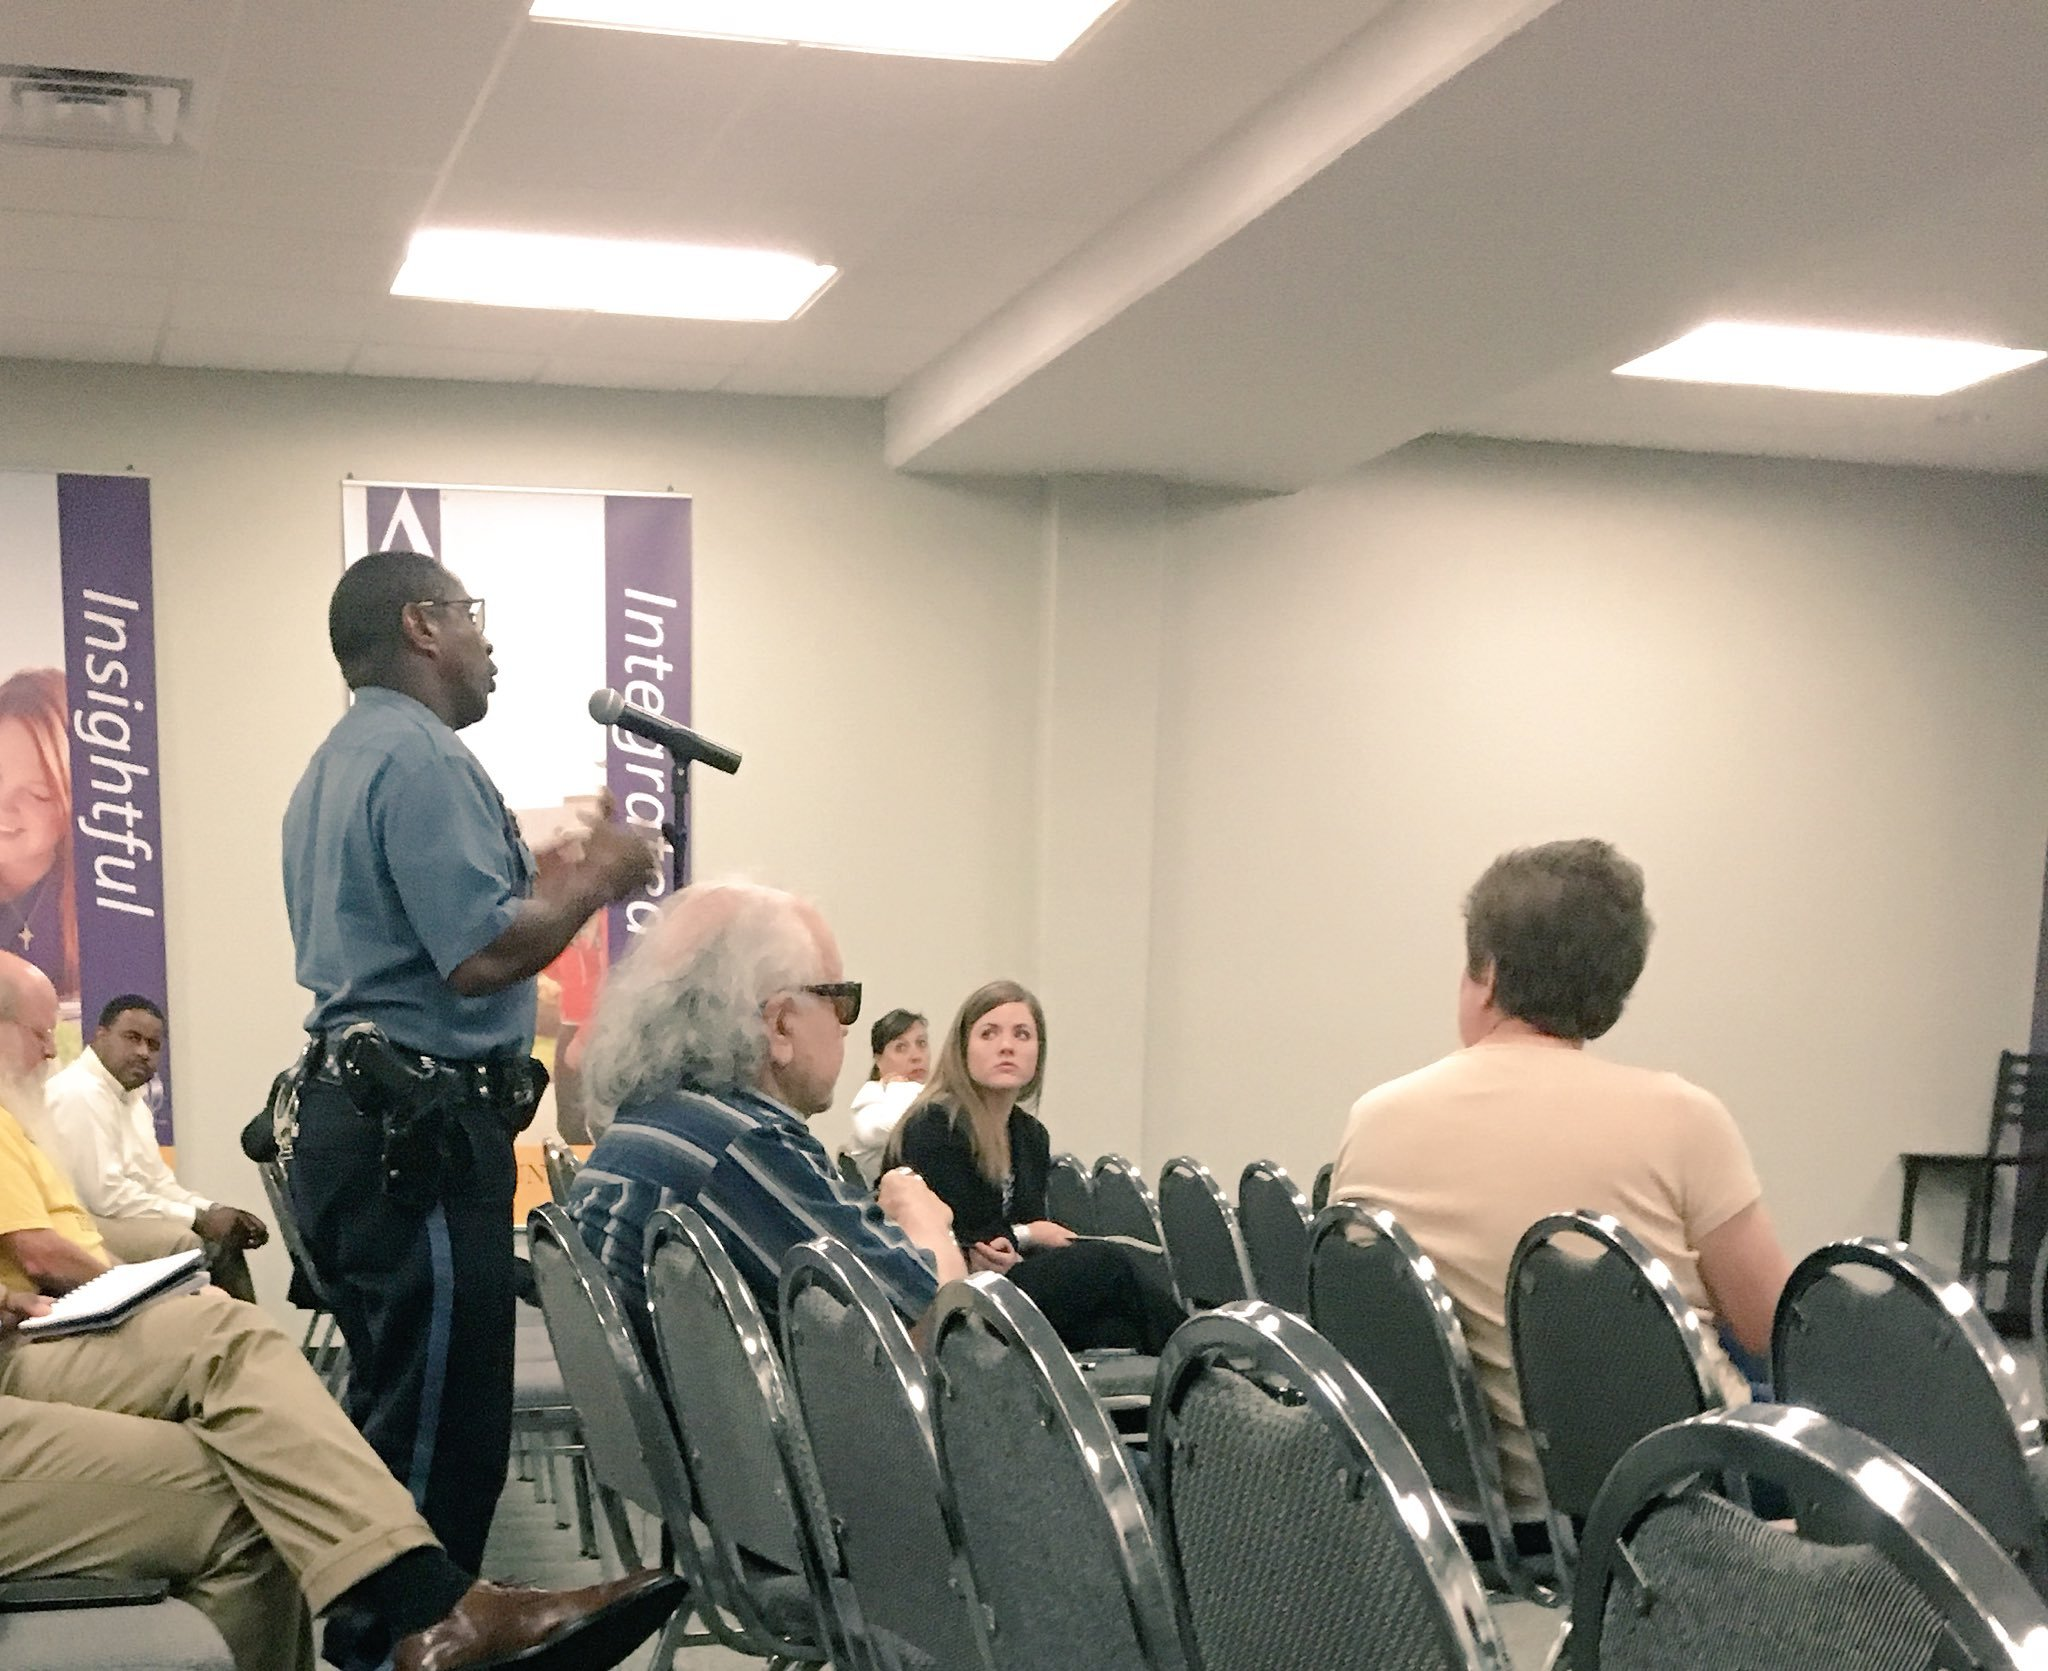 On Monday, the community weighed in on what type of candidate the Board of Police Commissioners should consider. (Rudy Harper/KCTV5)